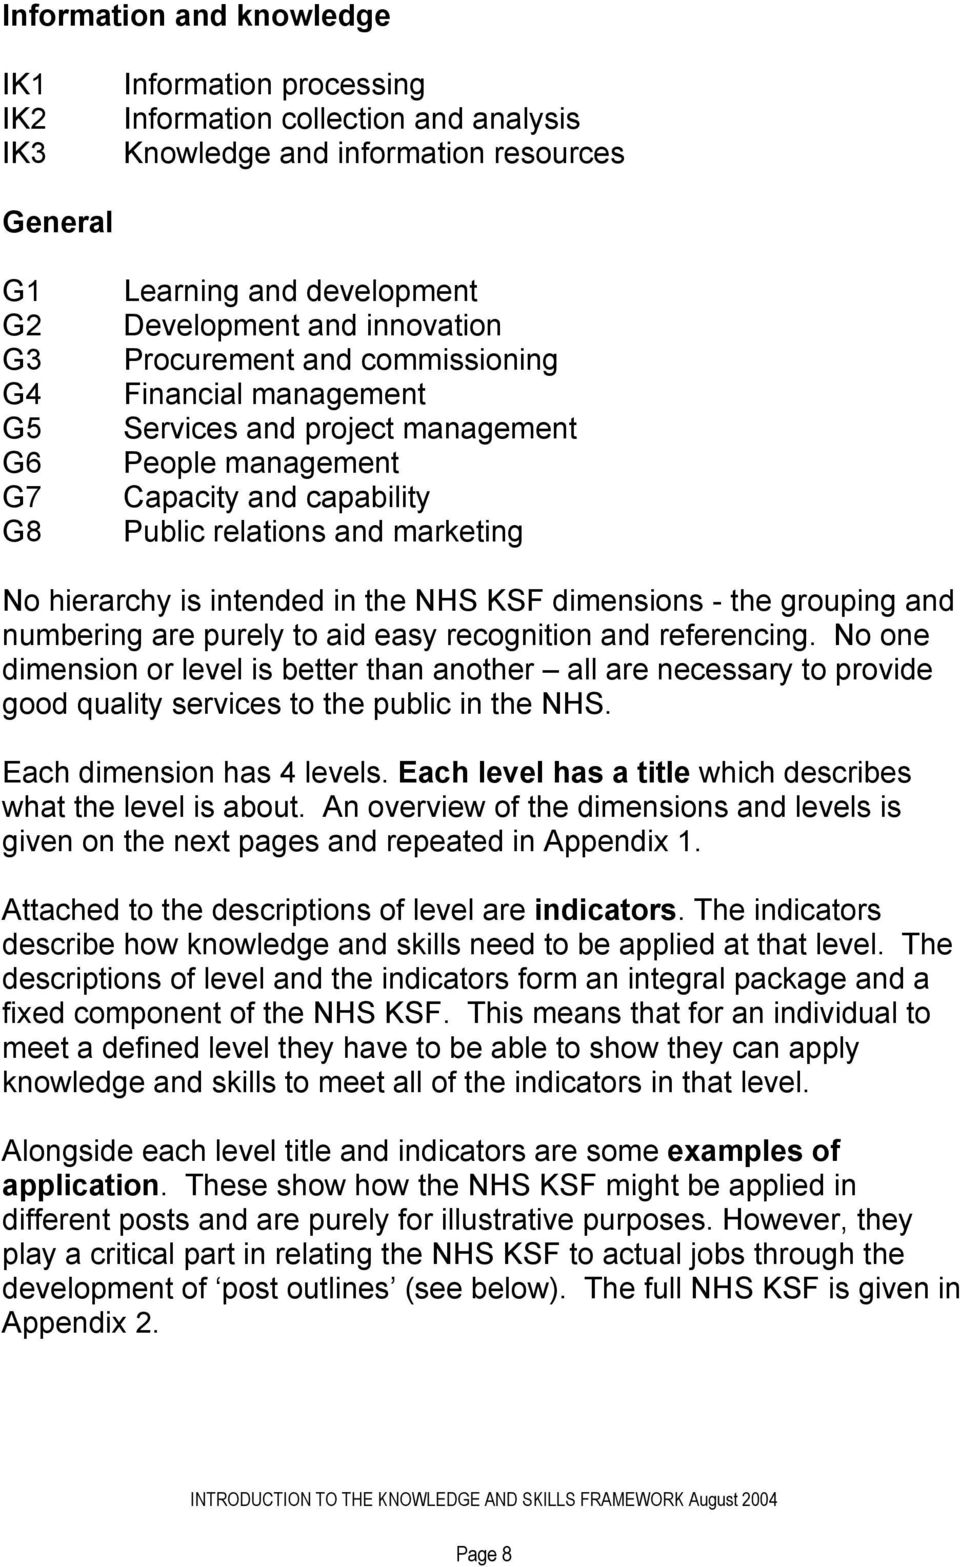 intended in the NHS KSF dimensions - the grouping and numbering are purely to aid easy recognition and referencing.